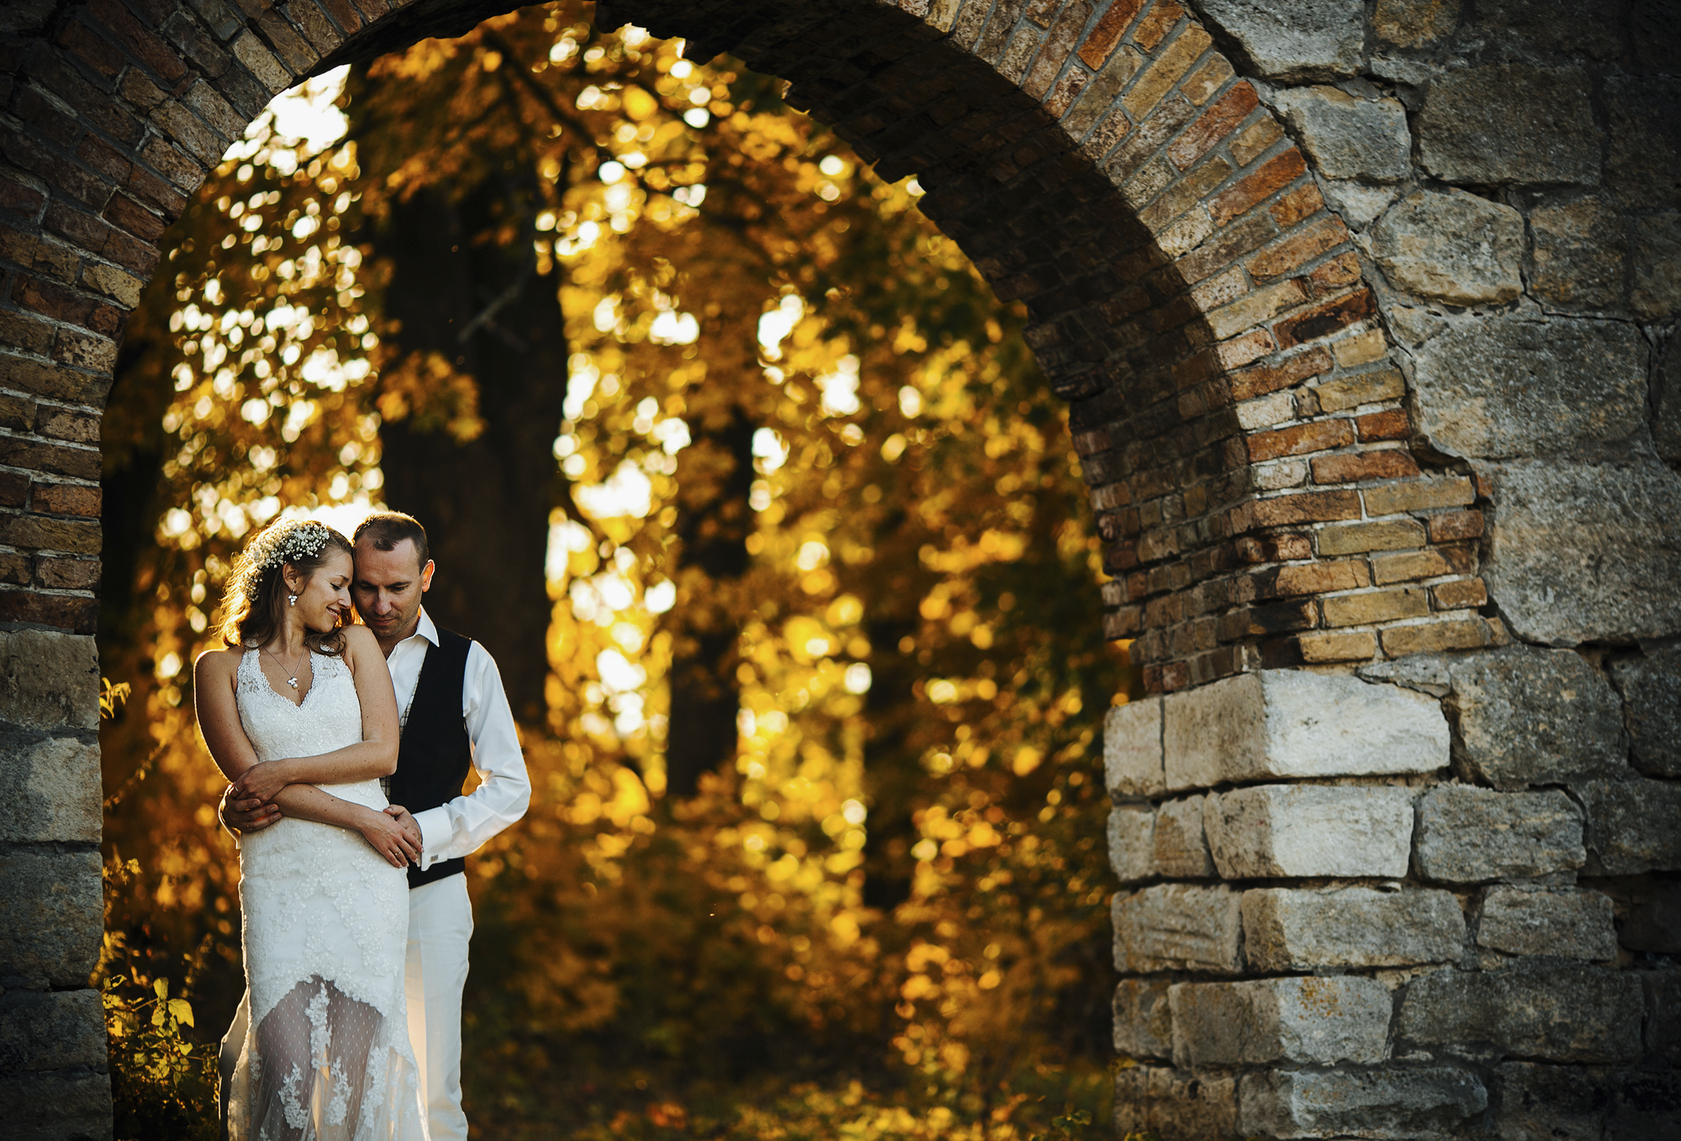 Couple posing in an autumn wedding